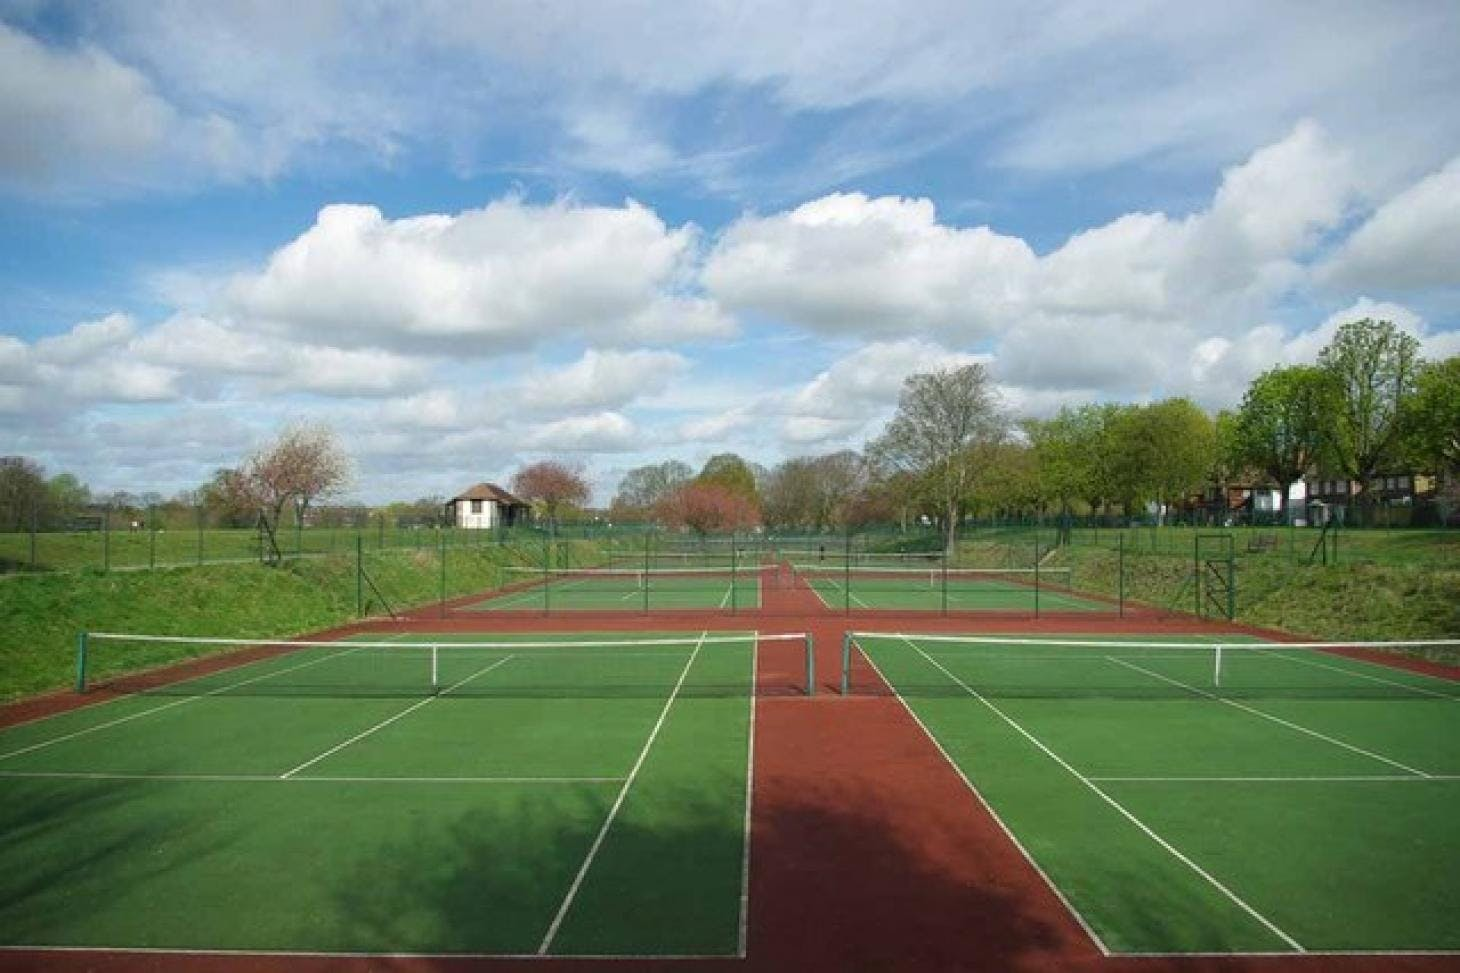 Raphael Park Tennis Courts Outdoor | Hard (macadam) tennis court